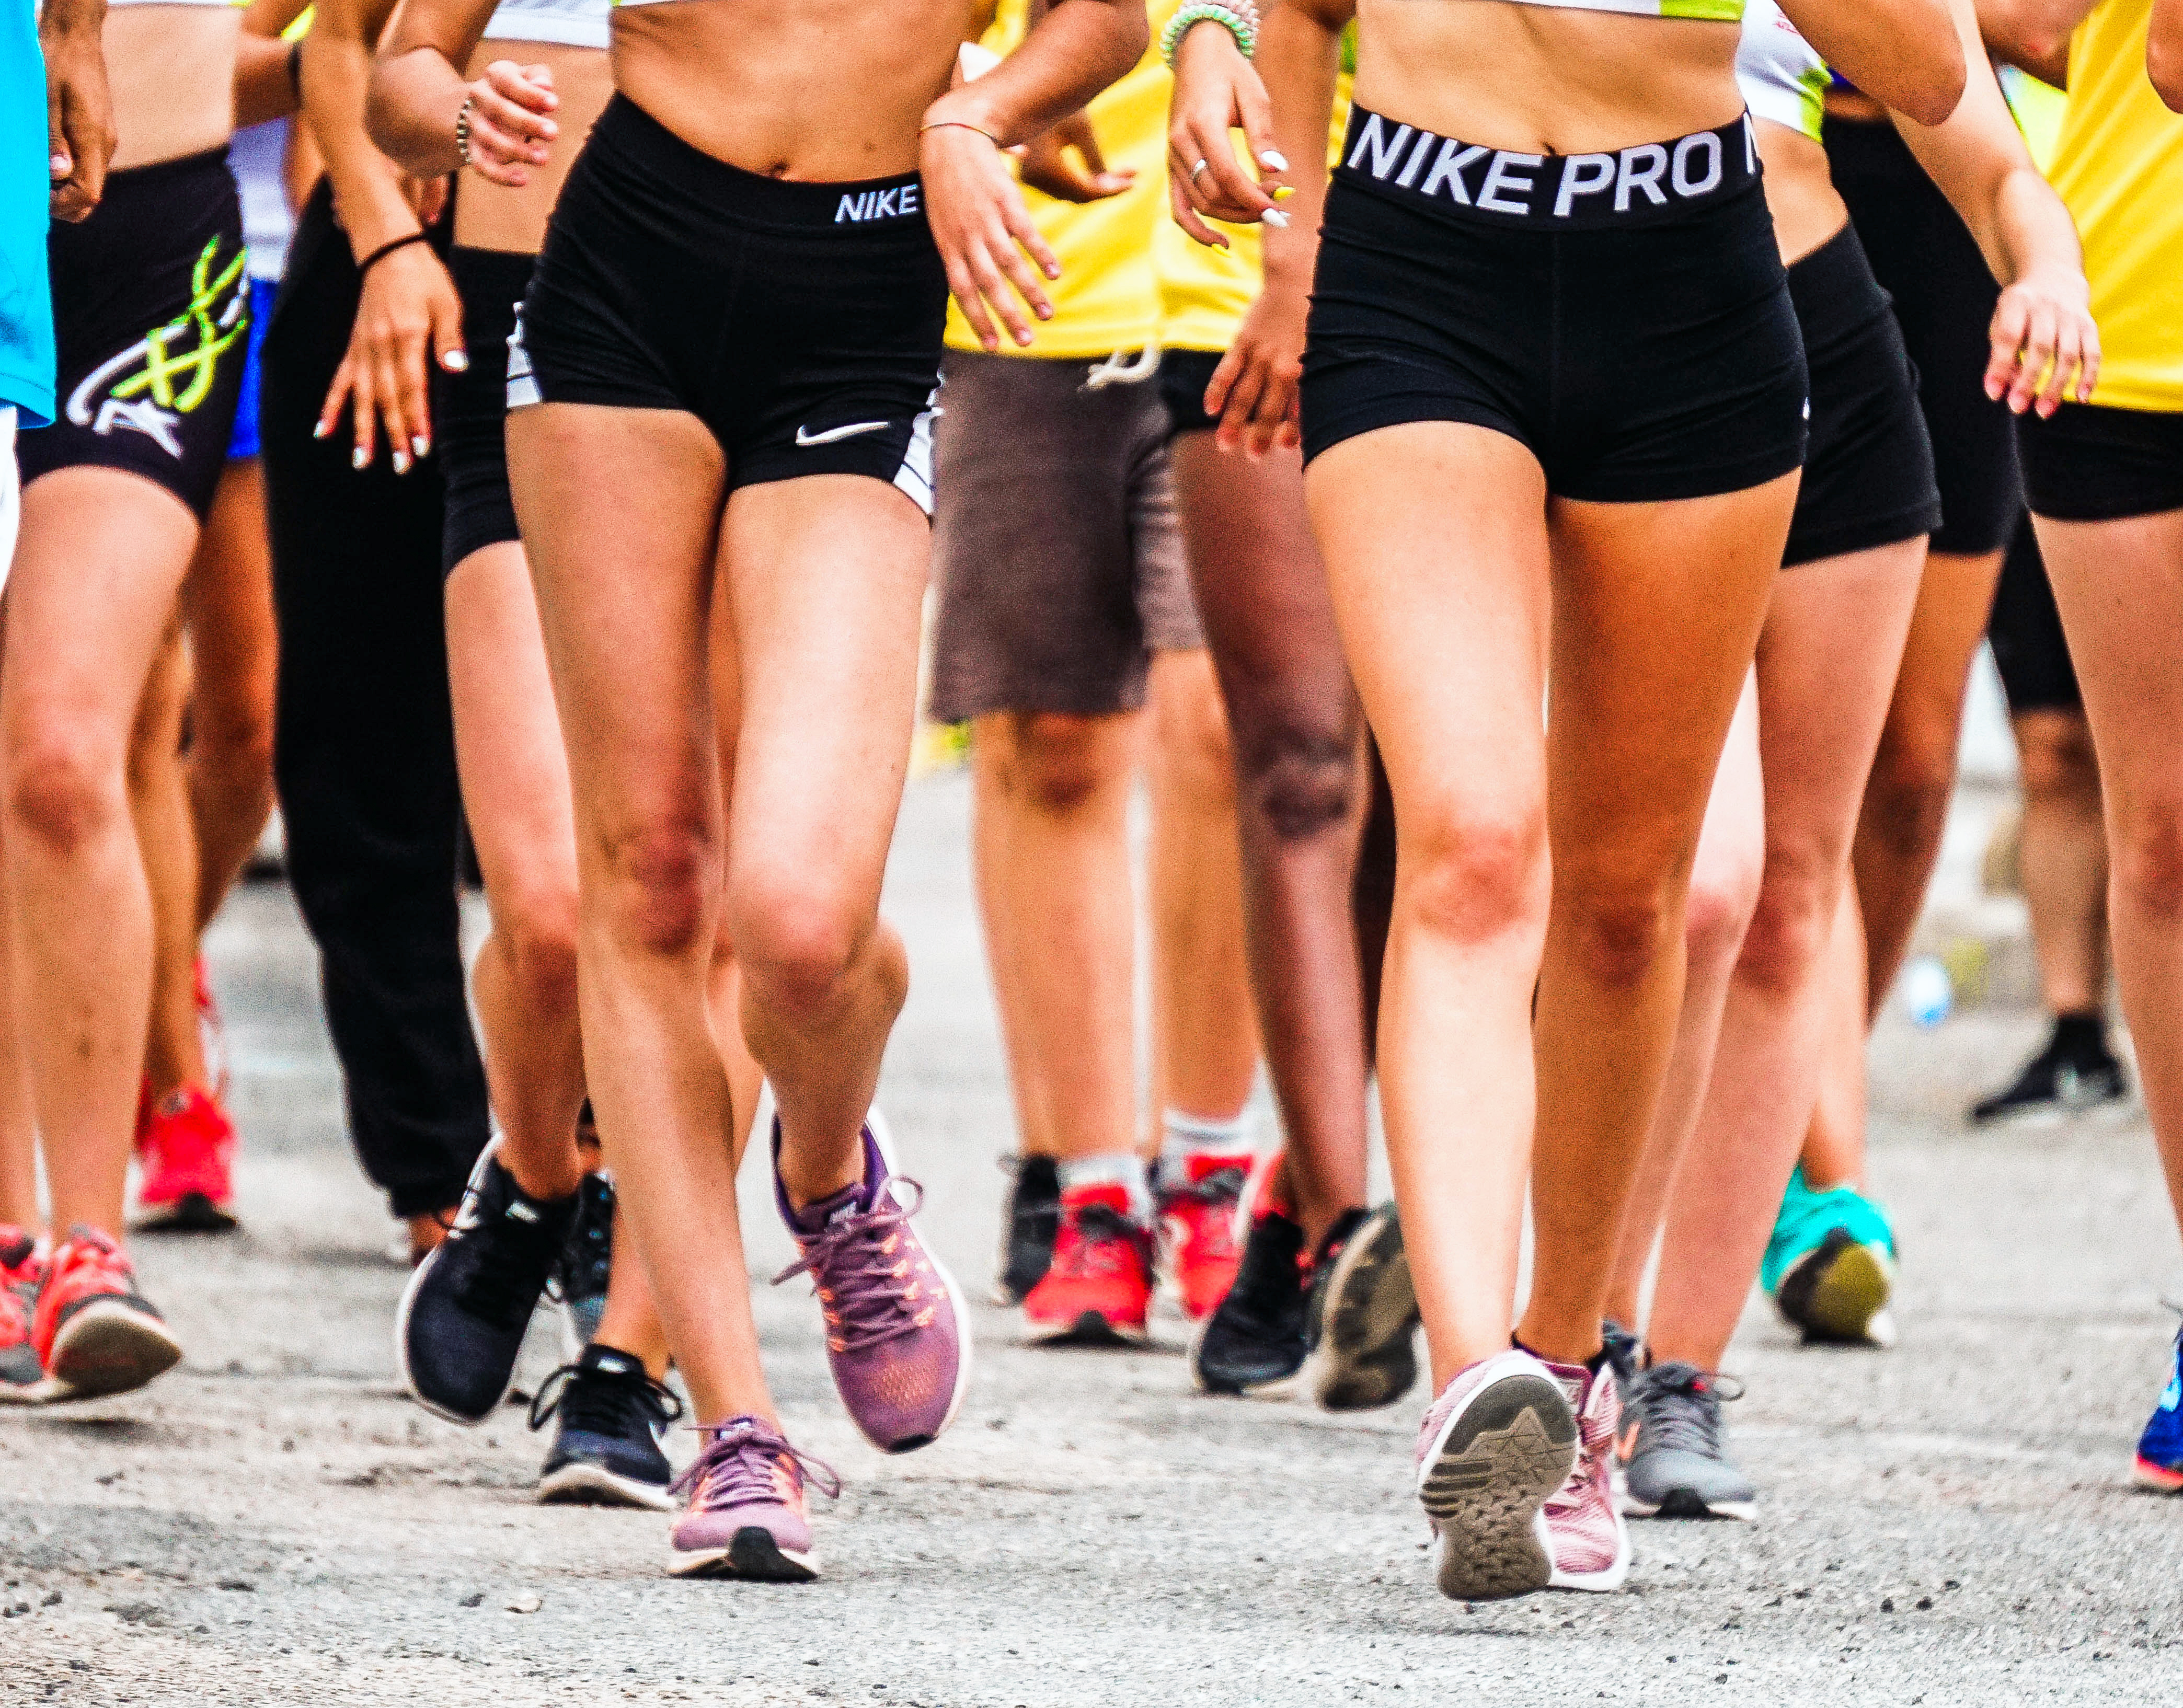 people running a race in shorts on pavement. run club at world of beer on mondays at 6 or 6:30